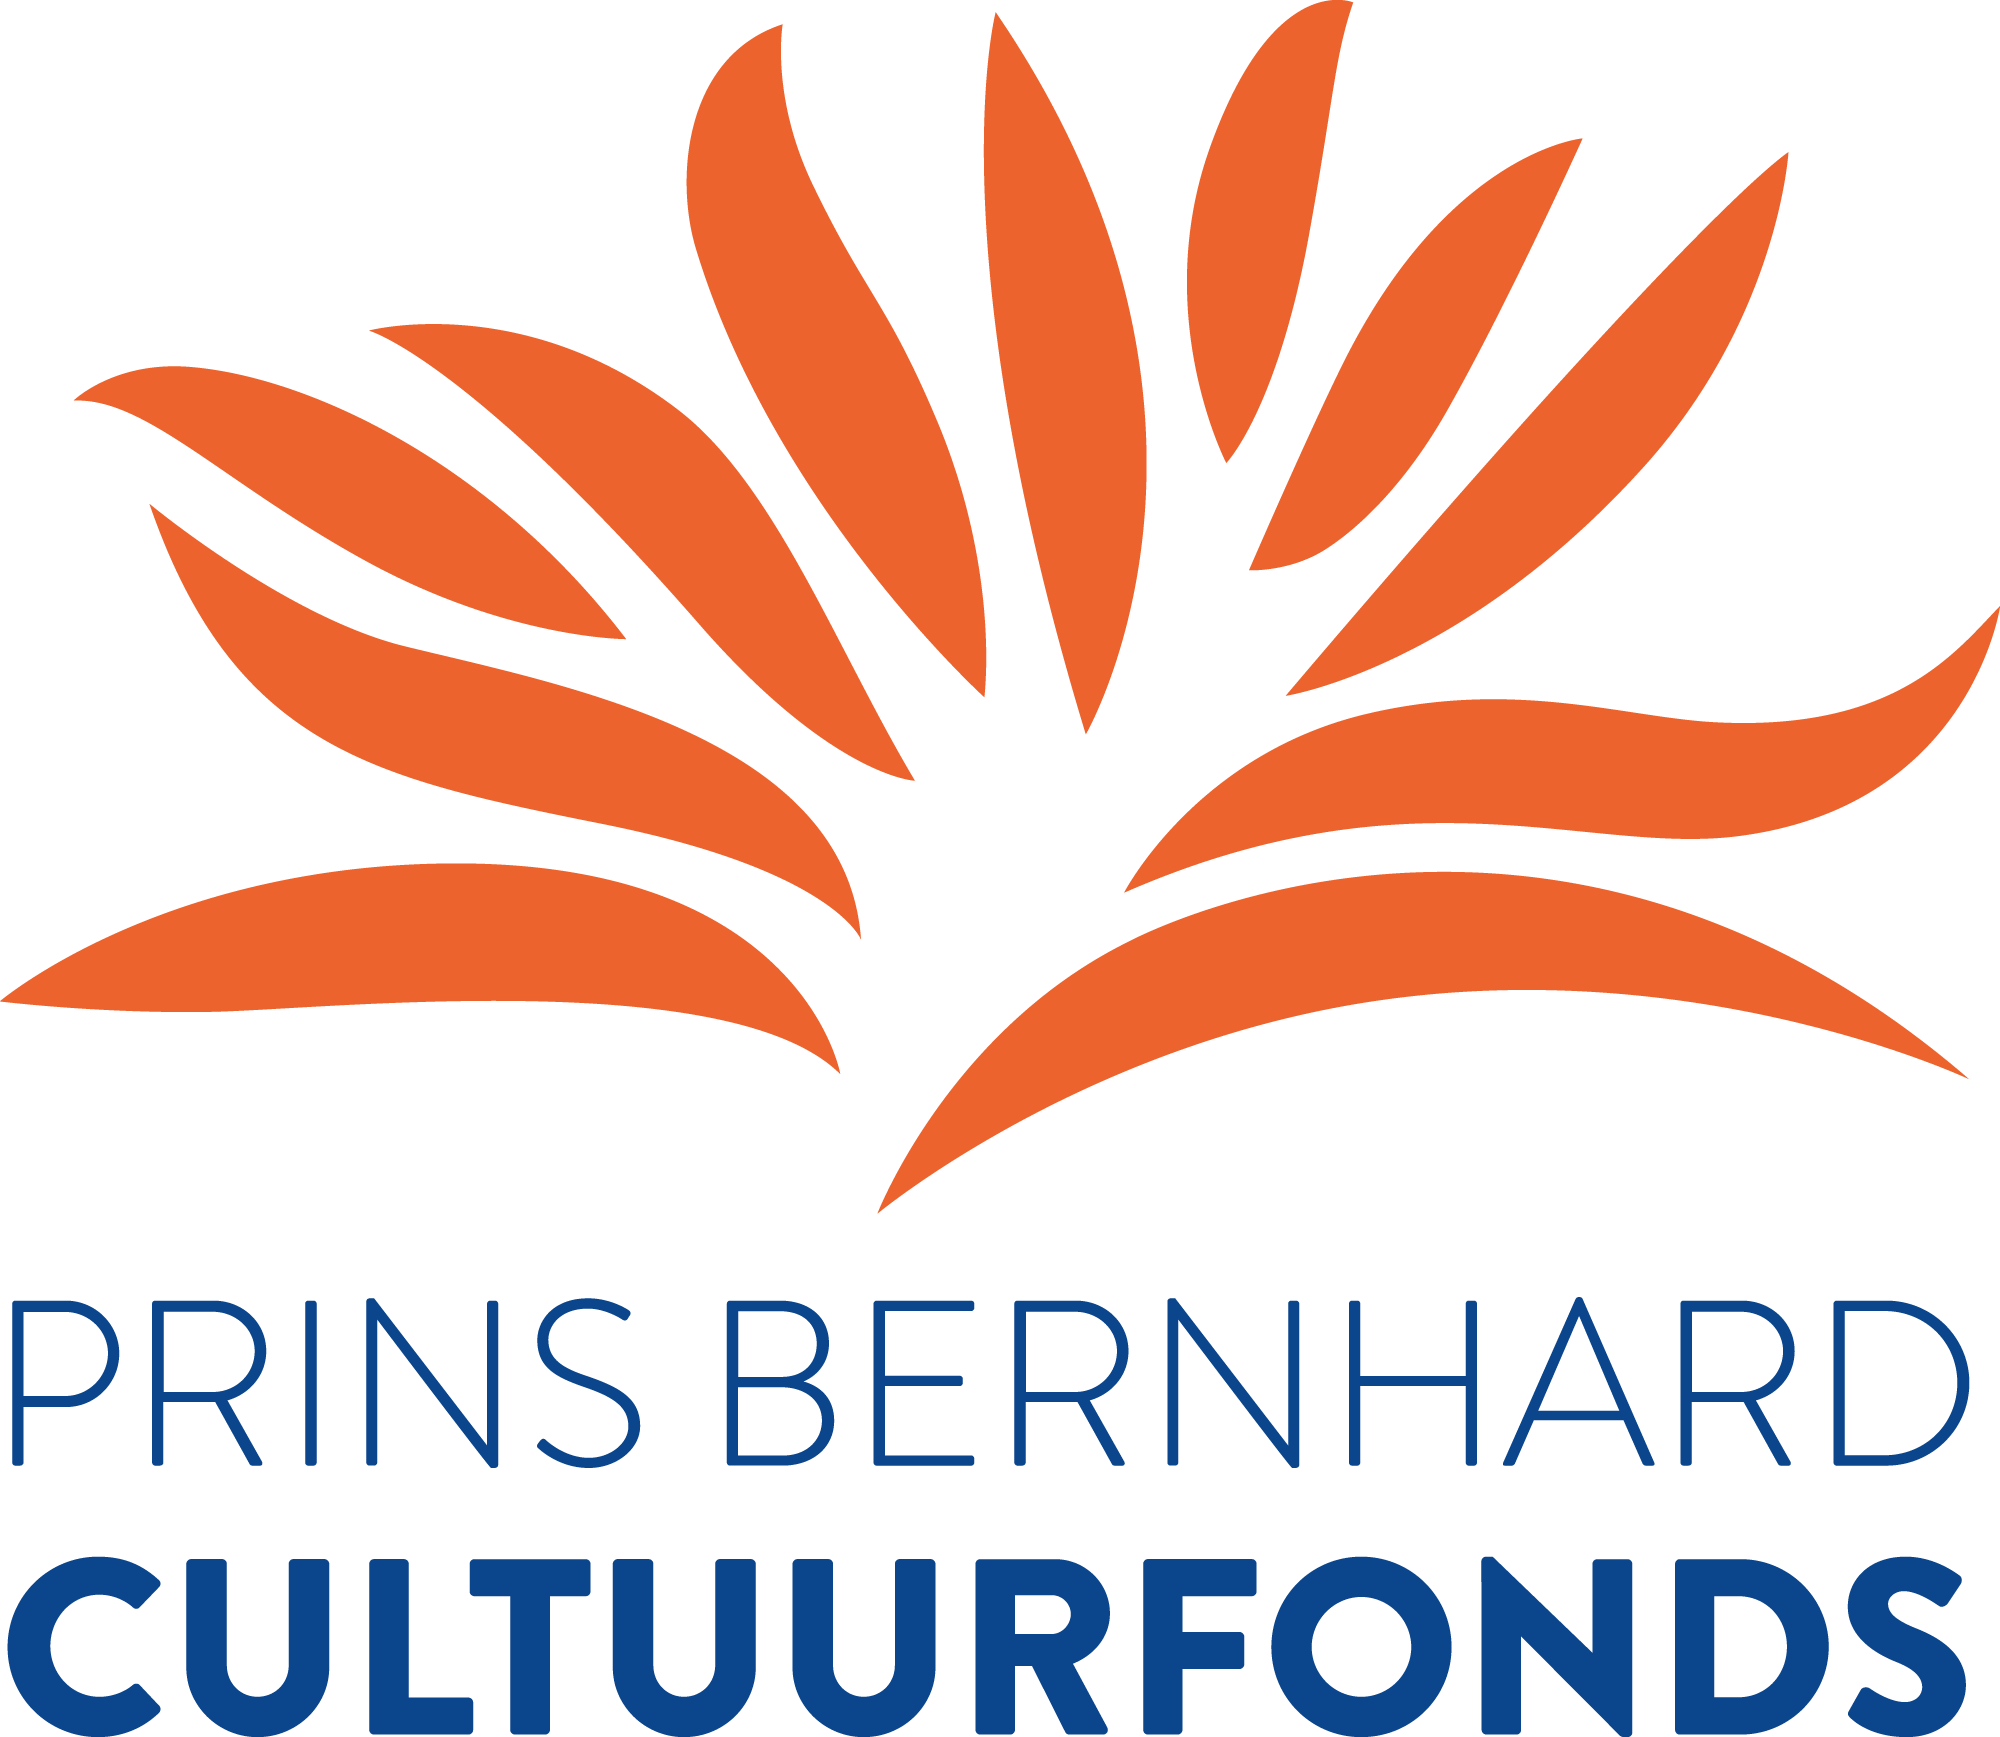 Prins Bernhard Cultuurfonds - full color (1)